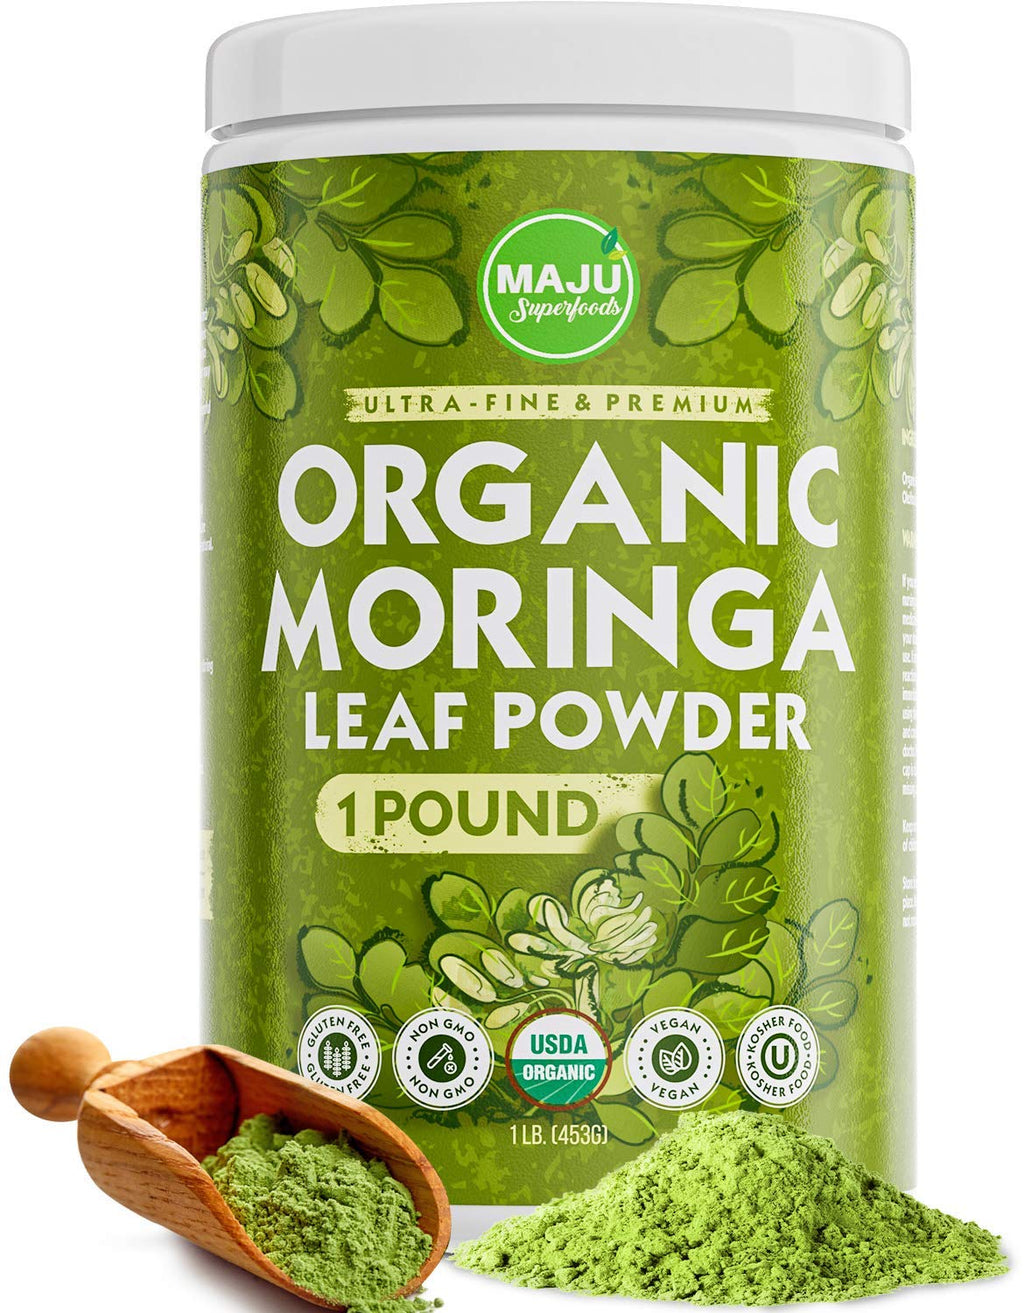 MAJU's Organic Moringa Powder (1 Pound), Oleifera Leaf, Extra-Fine Quality, Dried Drumstick Tree Leaves, Tea, Smoothies, Food-Grade - Maju Superfoods